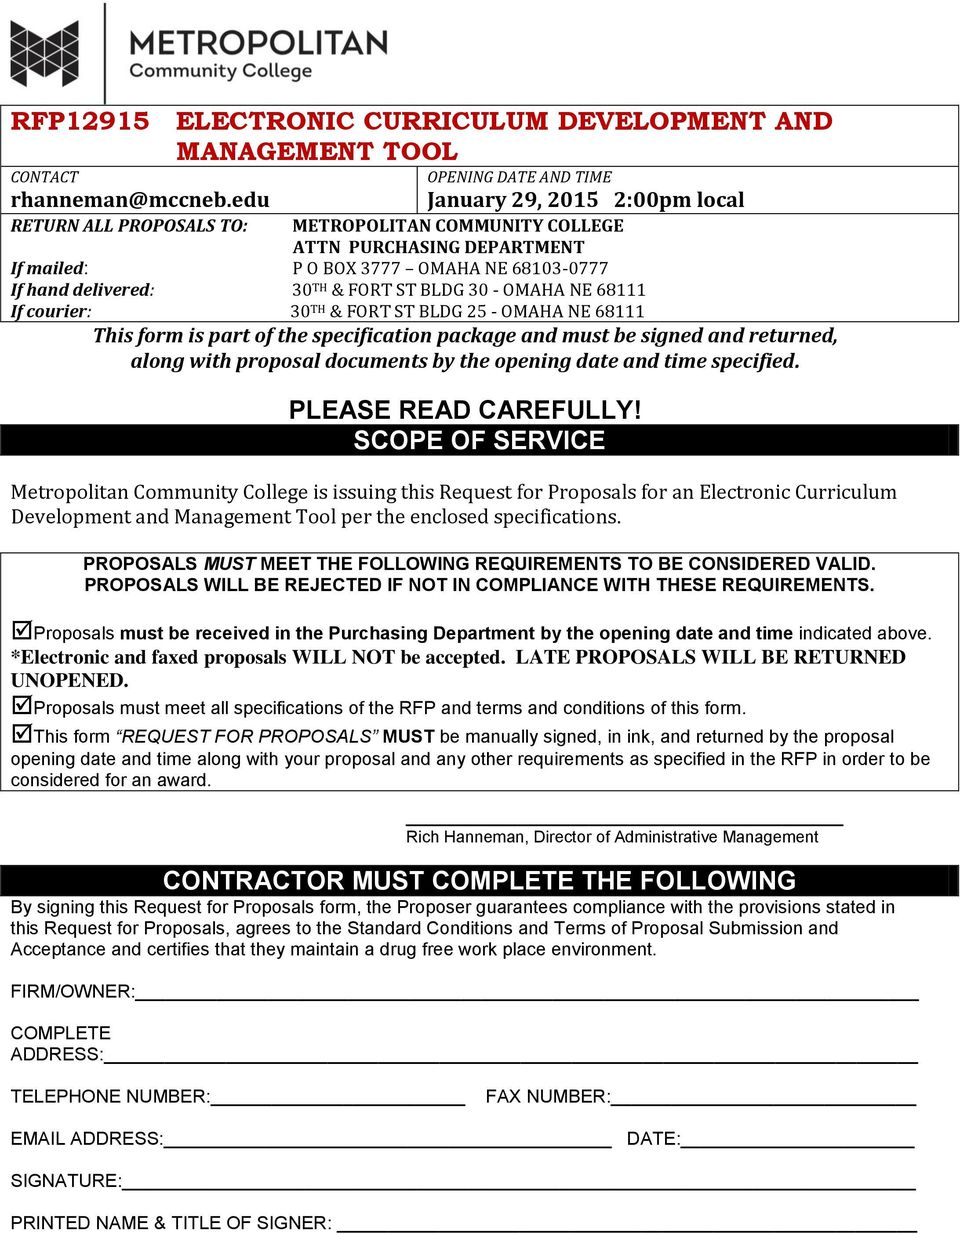 delivered: 30 TH & FORT ST BLDG 30 - OMAHA NE 68111 If courier: 30 TH & FORT ST BLDG 25 - OMAHA NE 68111 This form is part of the specification package and must be signed and returned, along with